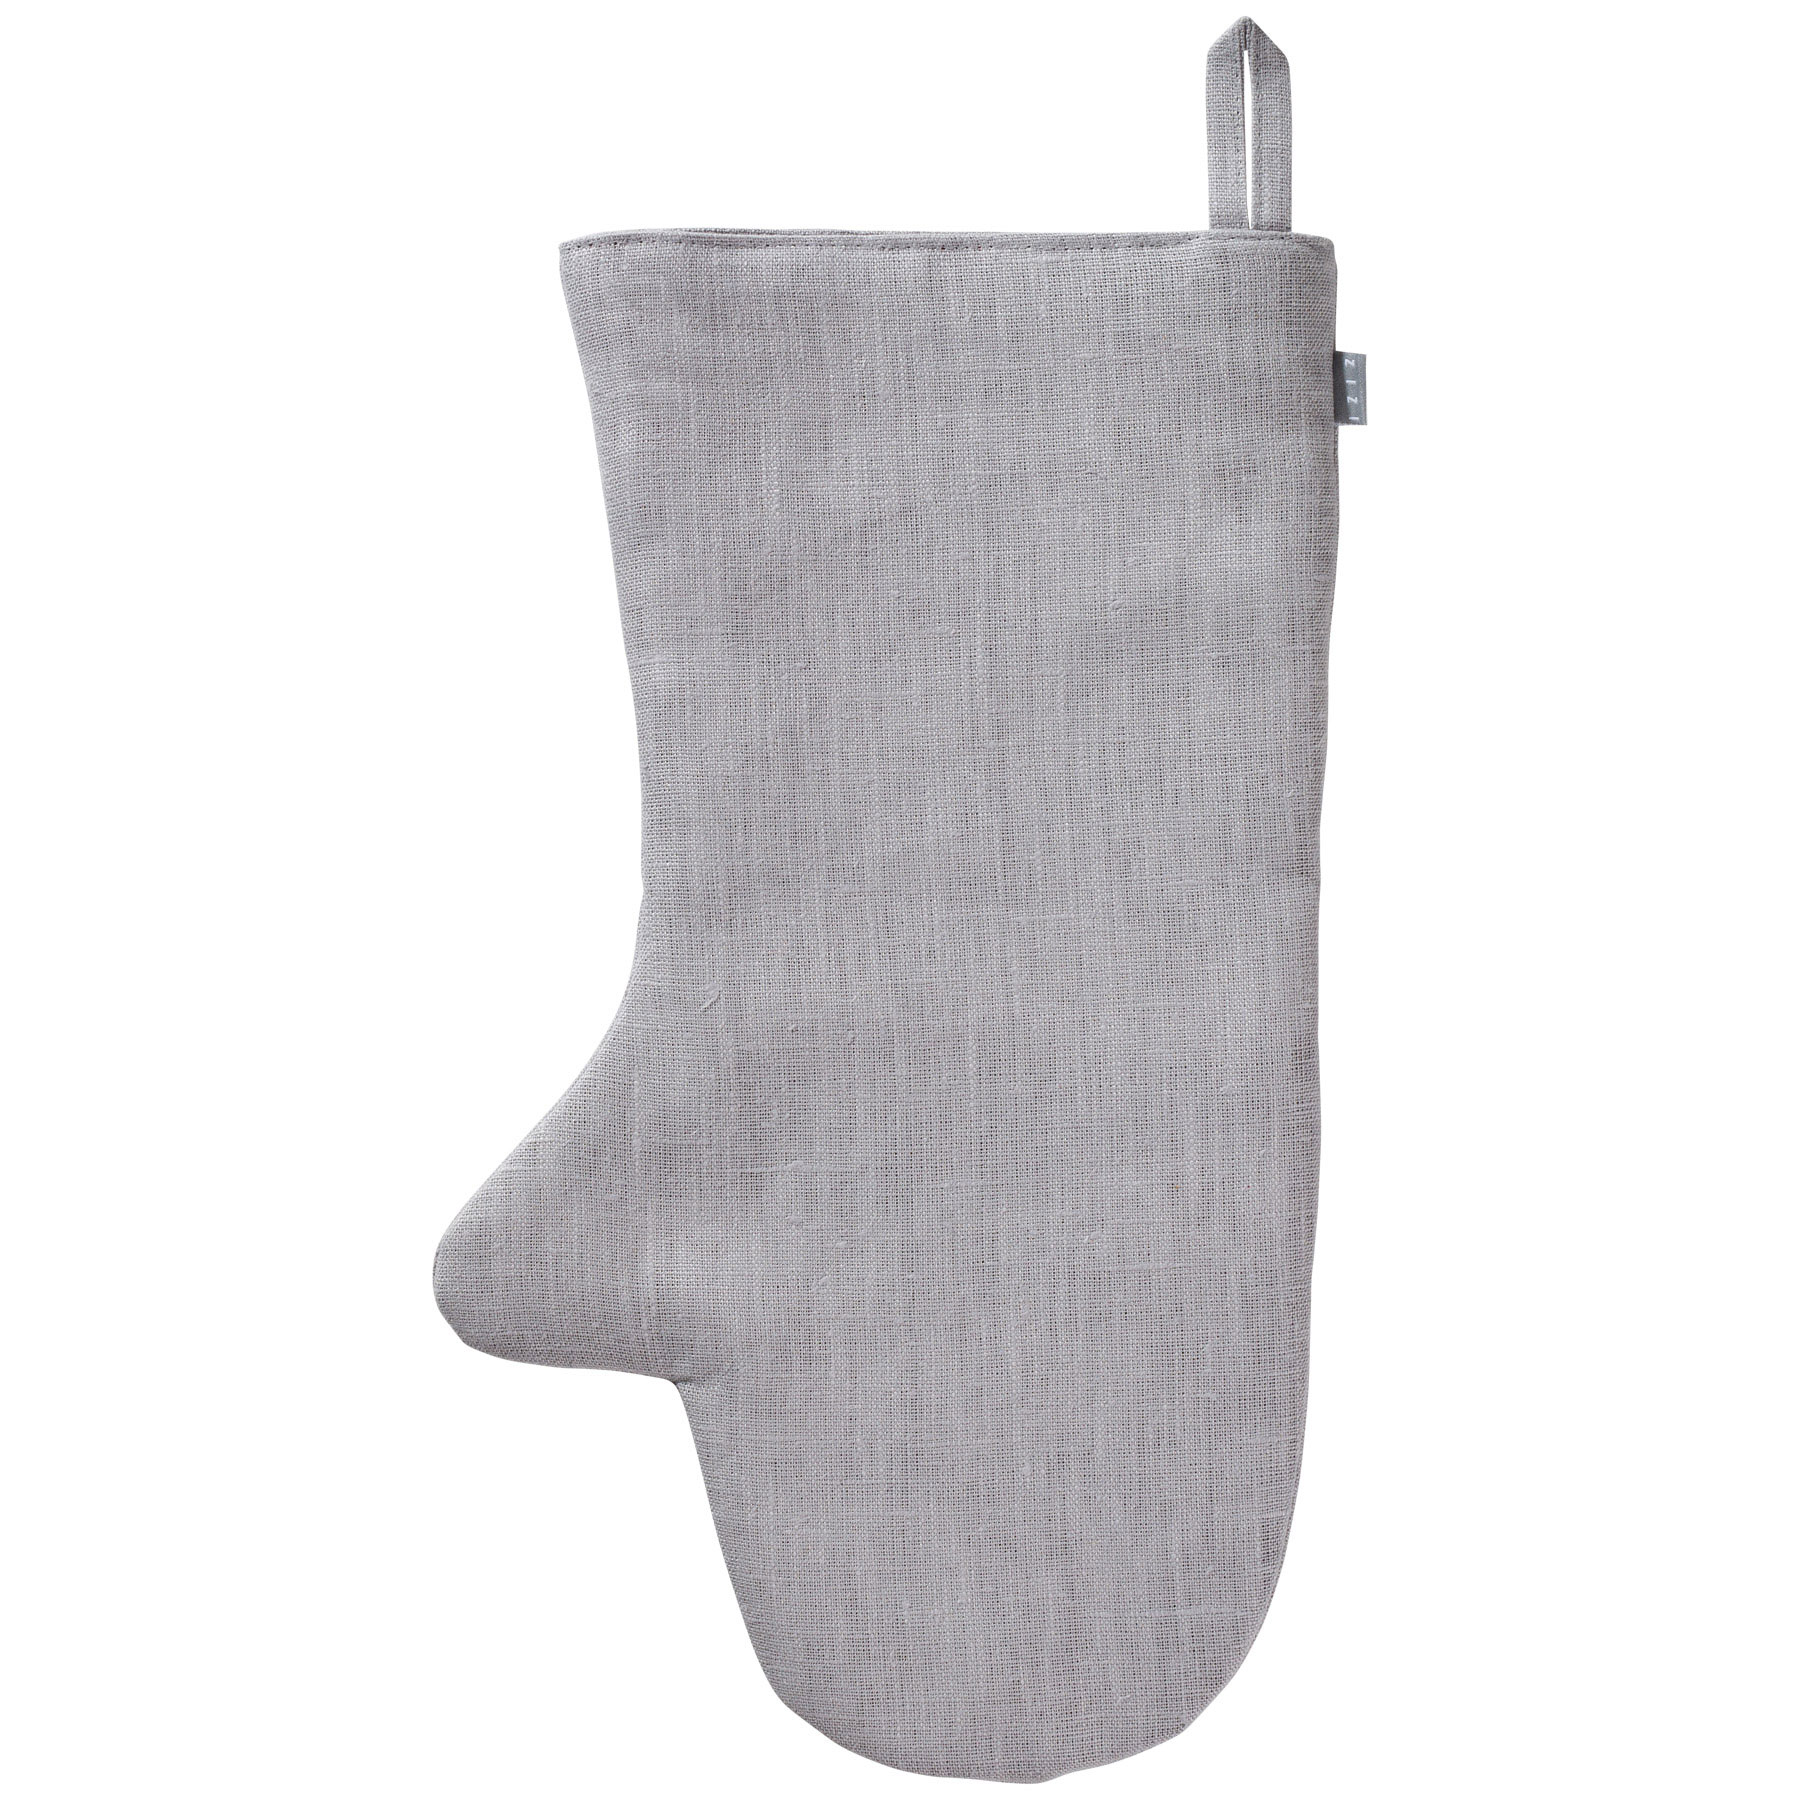 OVEN MITT <br />light gray